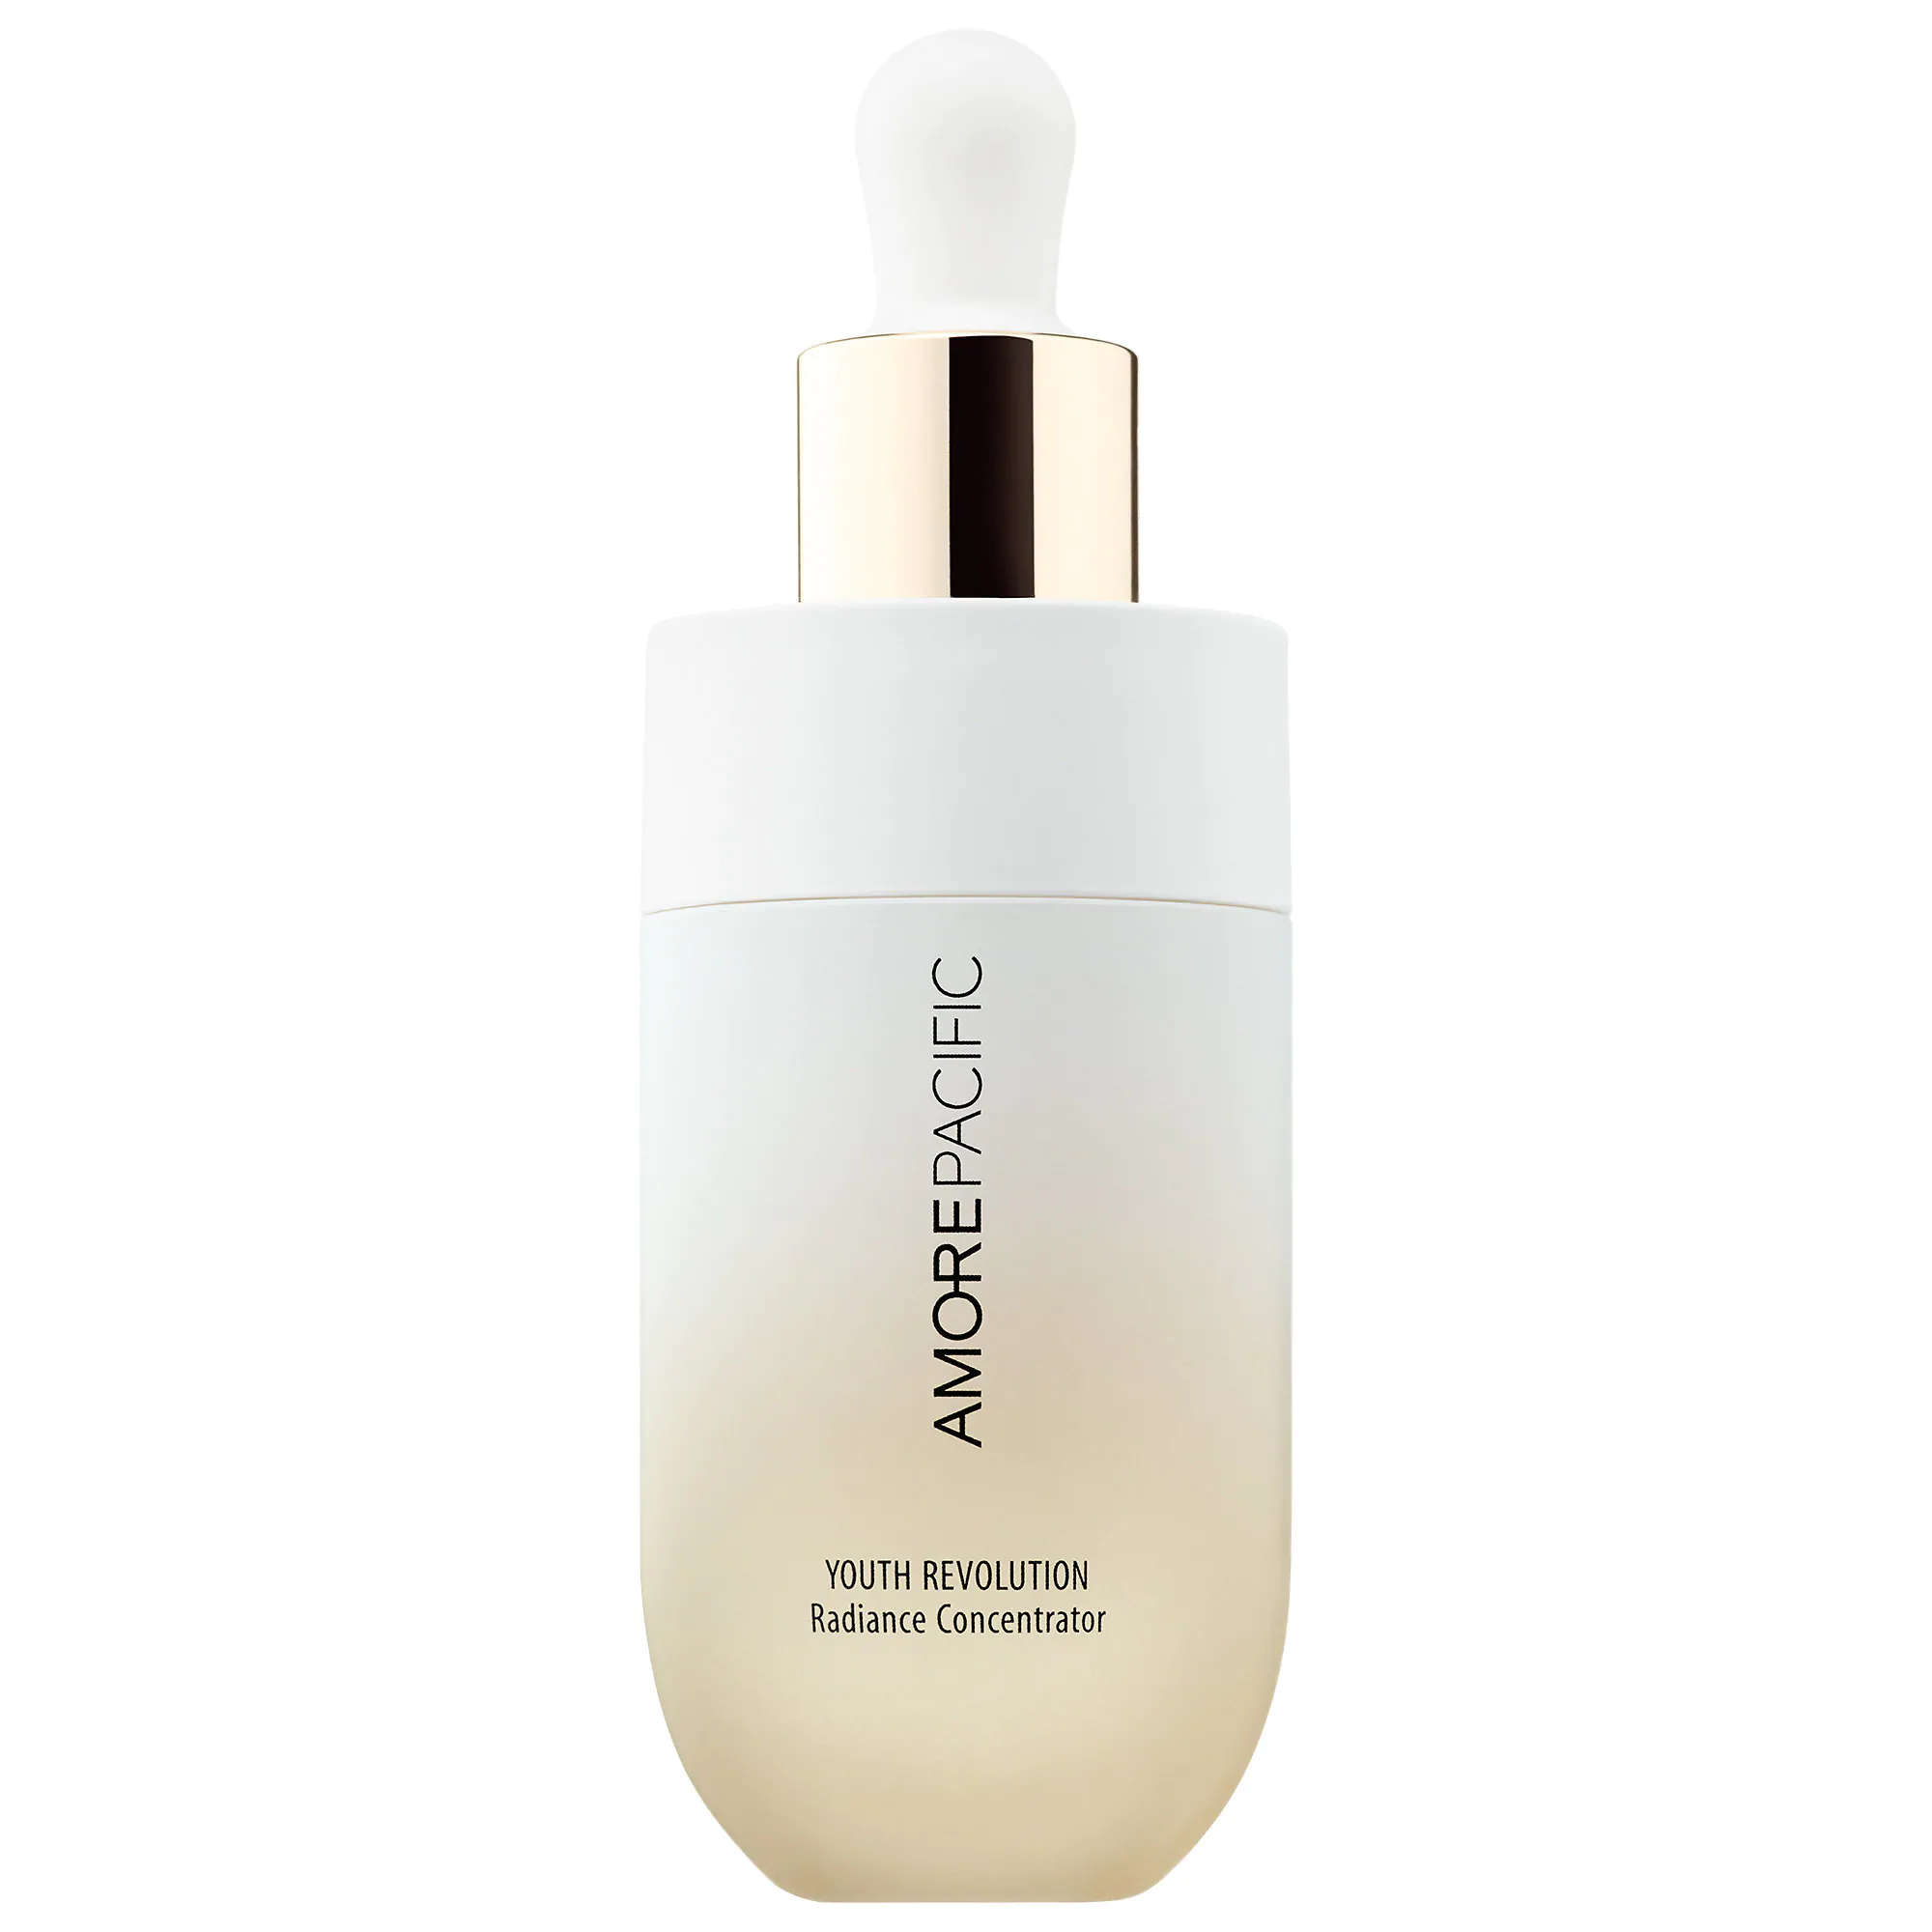 AMOREPACIFIC Youth Revolution Vitamin C Radiance Concentrator